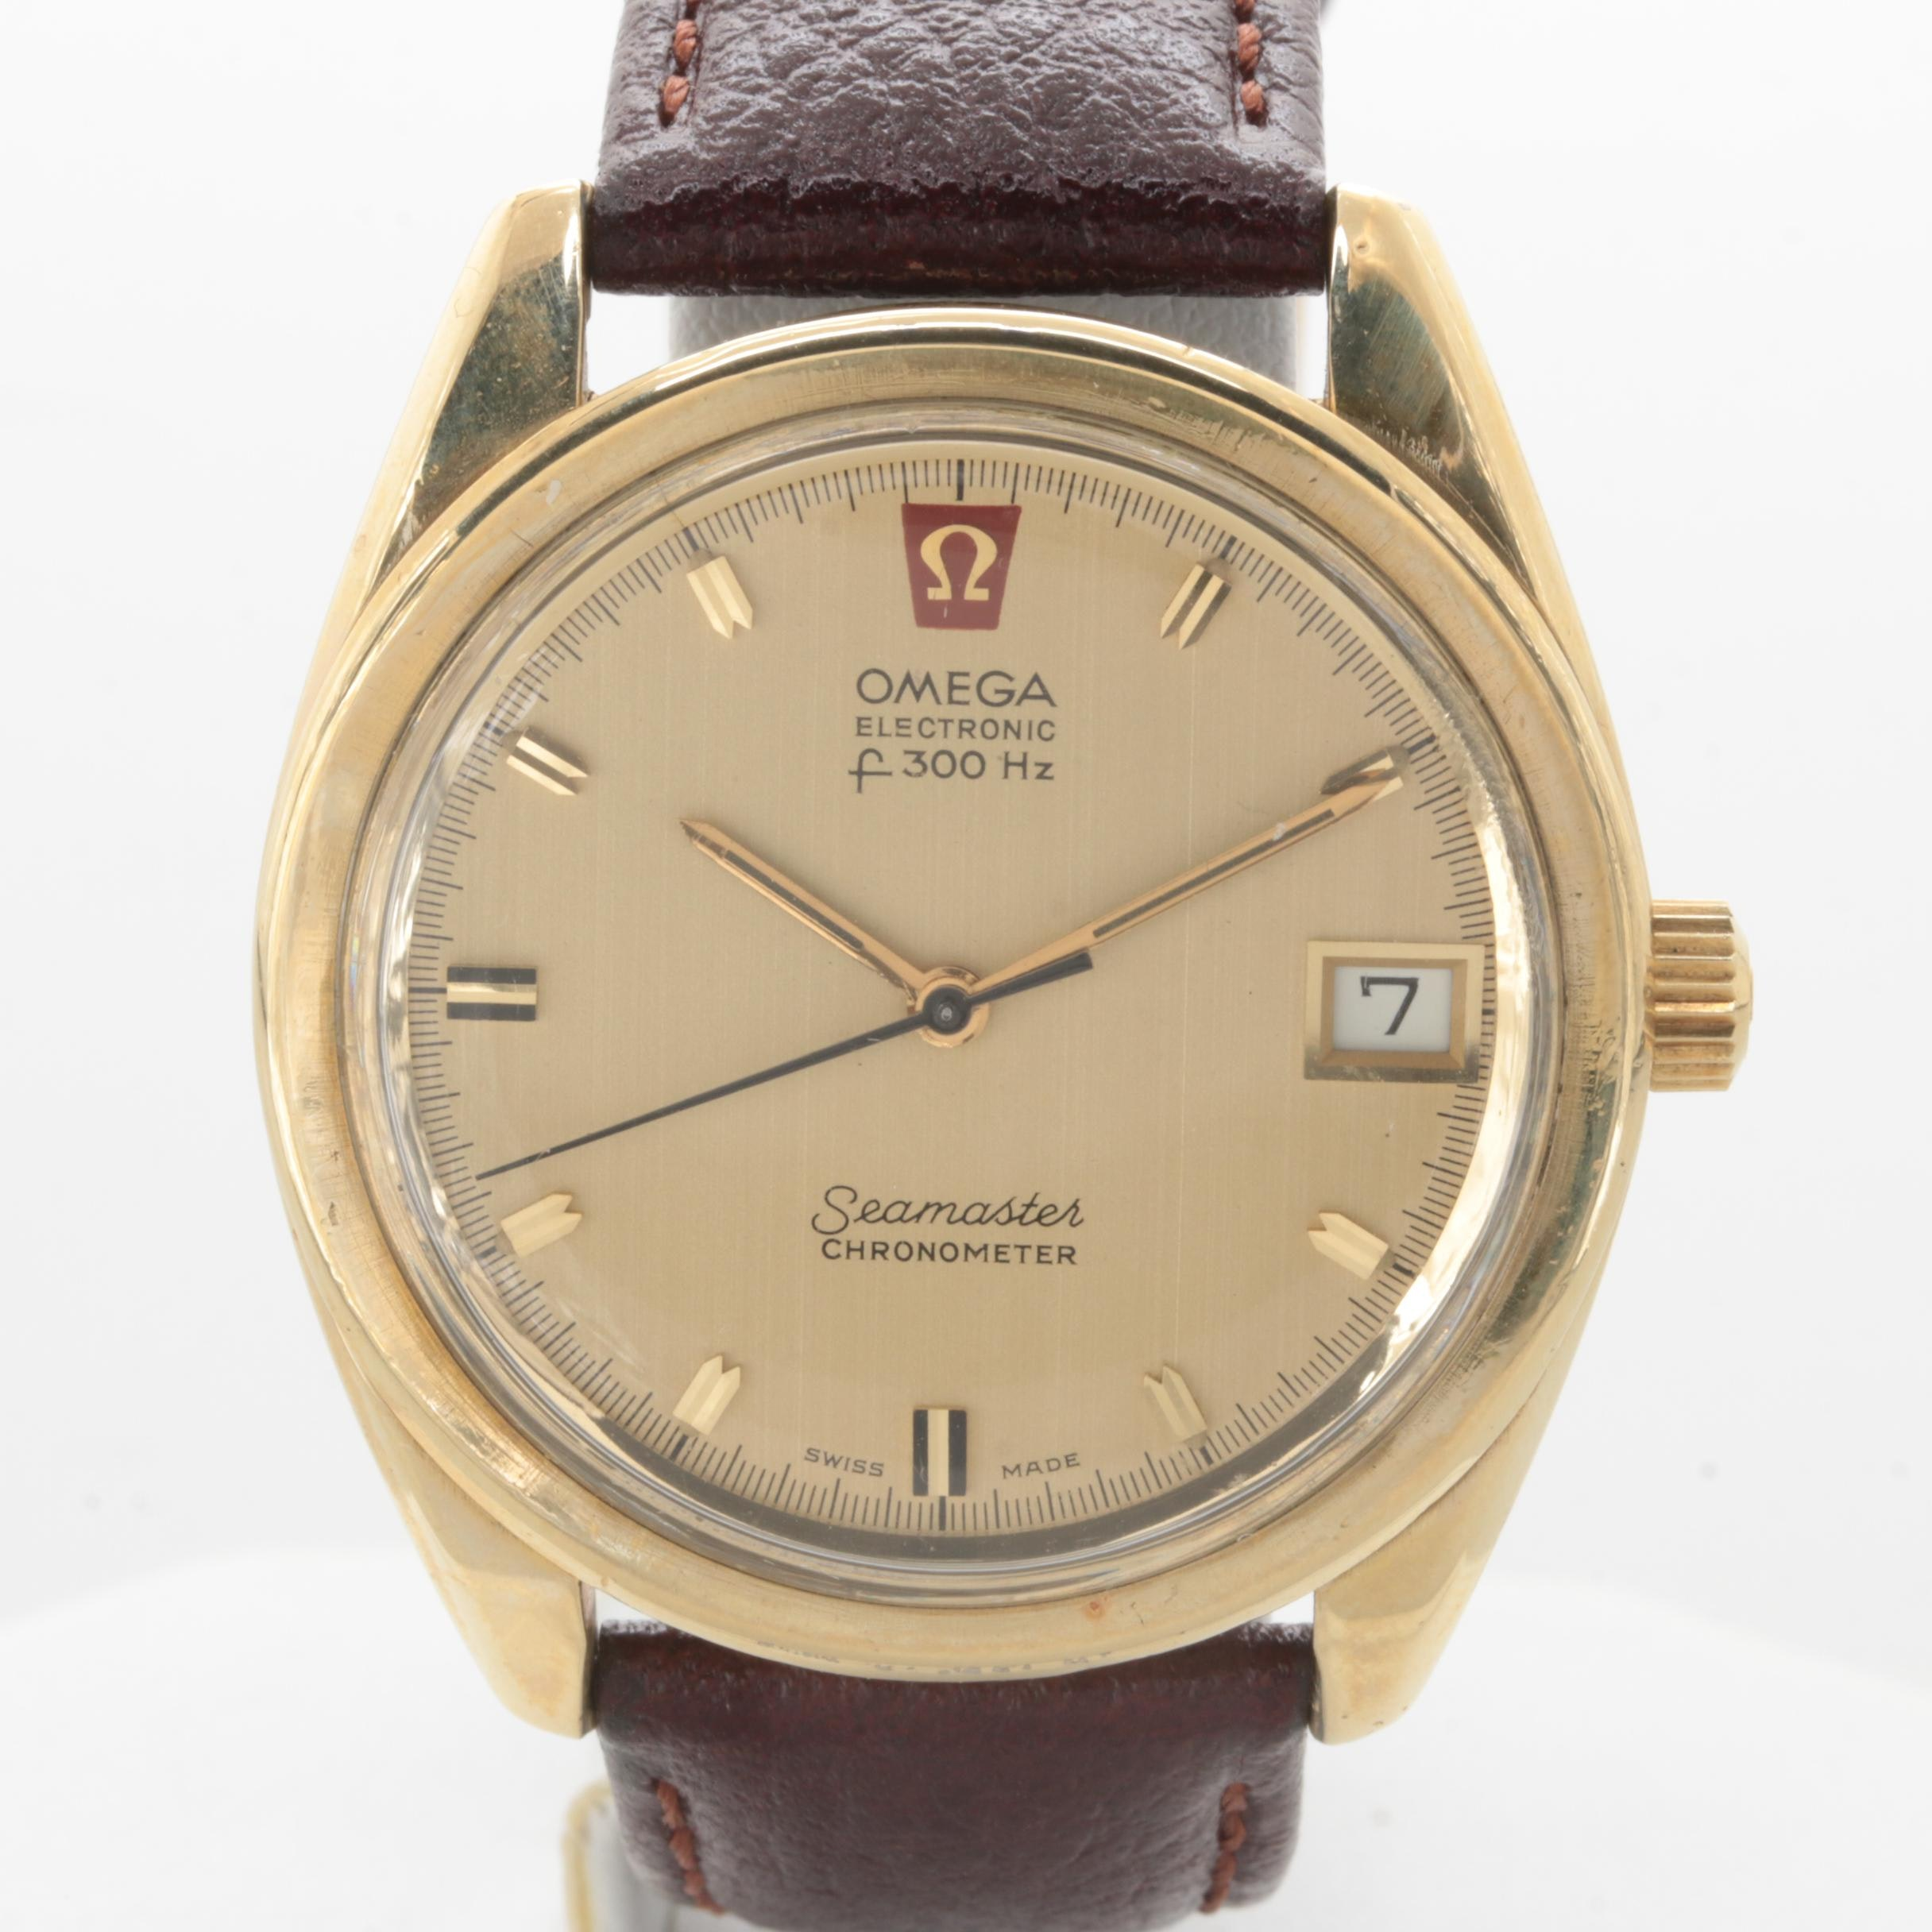 Omega Seamaster Gold-Tone Stainless Steel Wristwatch with Leather Strap